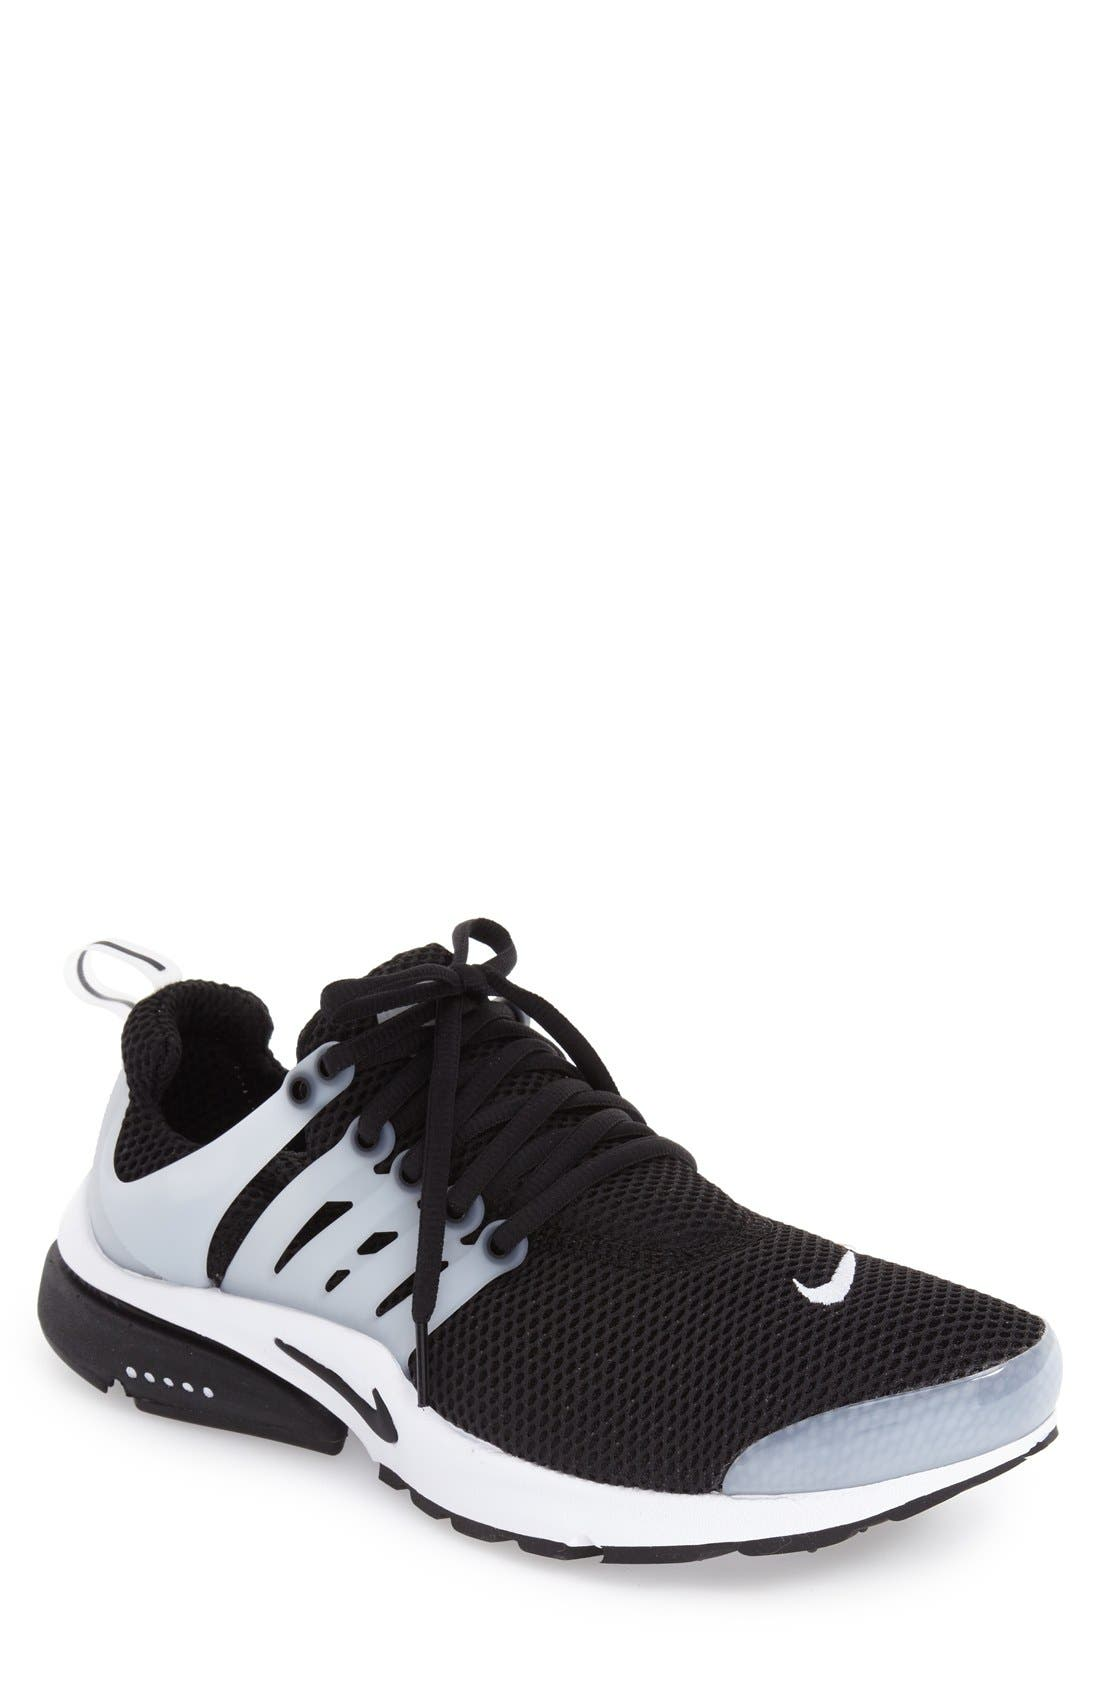 Main Image - Nike 'Air Presto' Sneaker (Men)